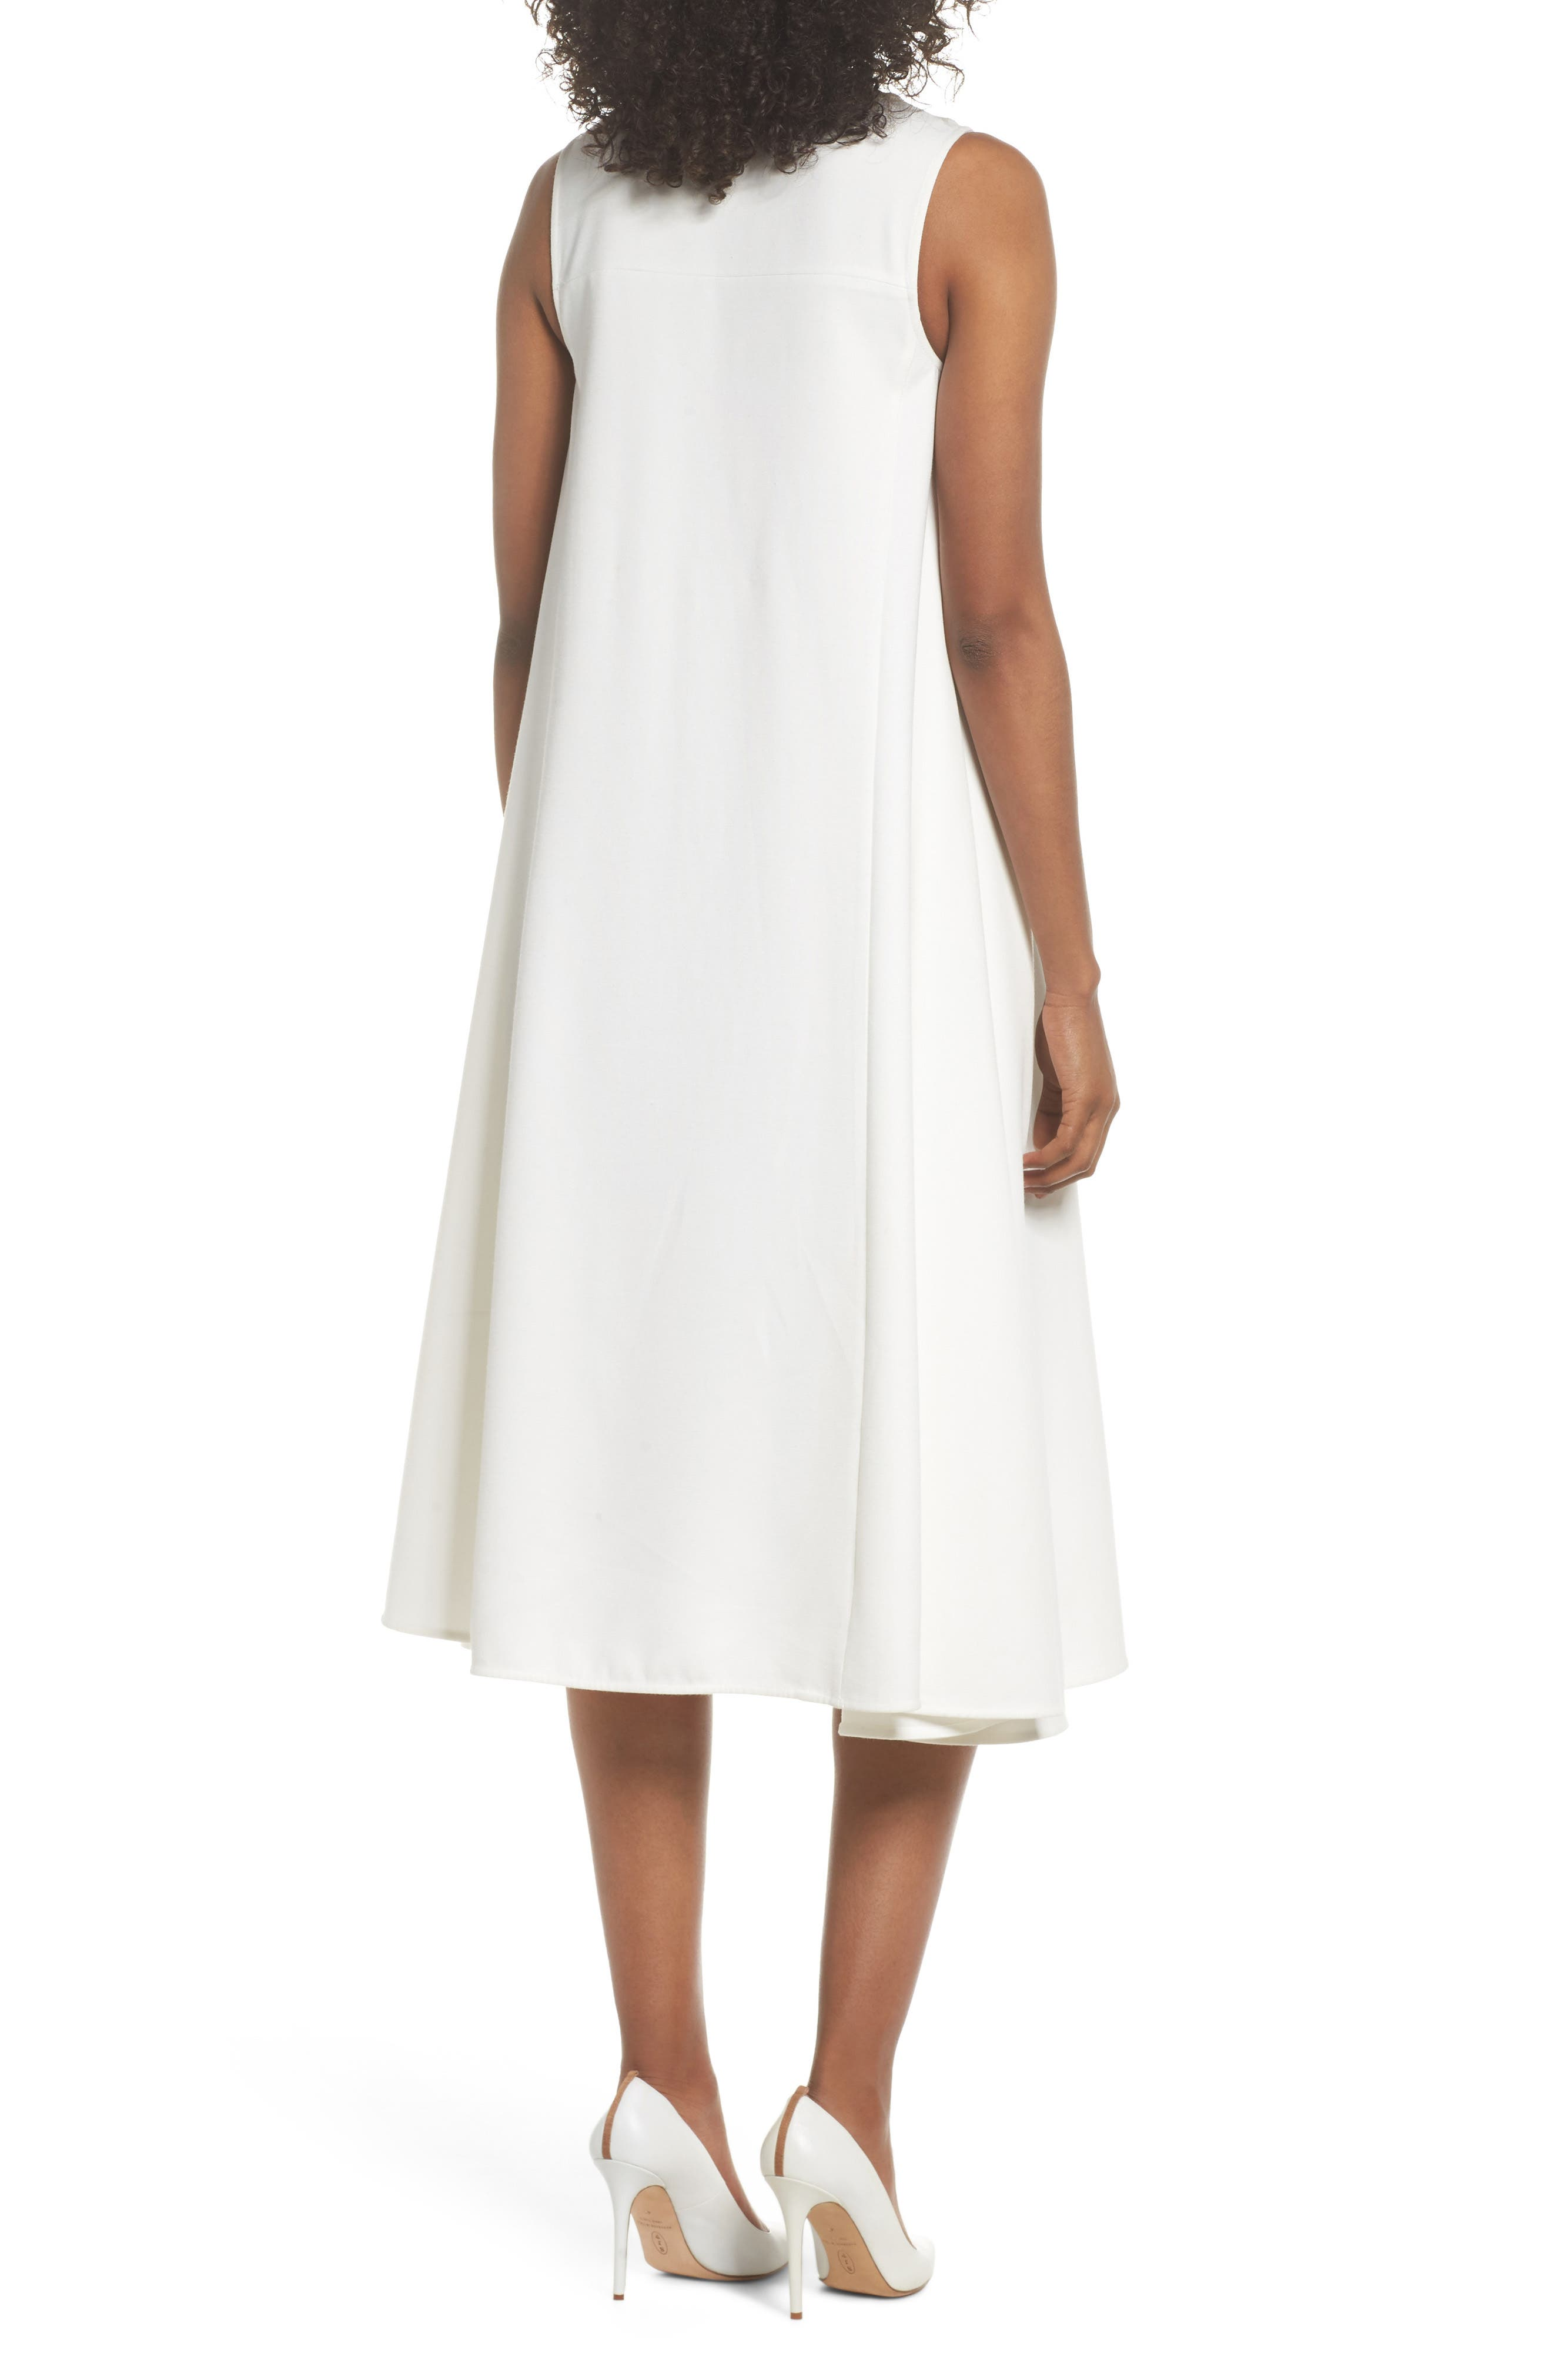 Sunday Brunch Sleeveless Midi Dress,                             Alternate thumbnail 2, color,                             100